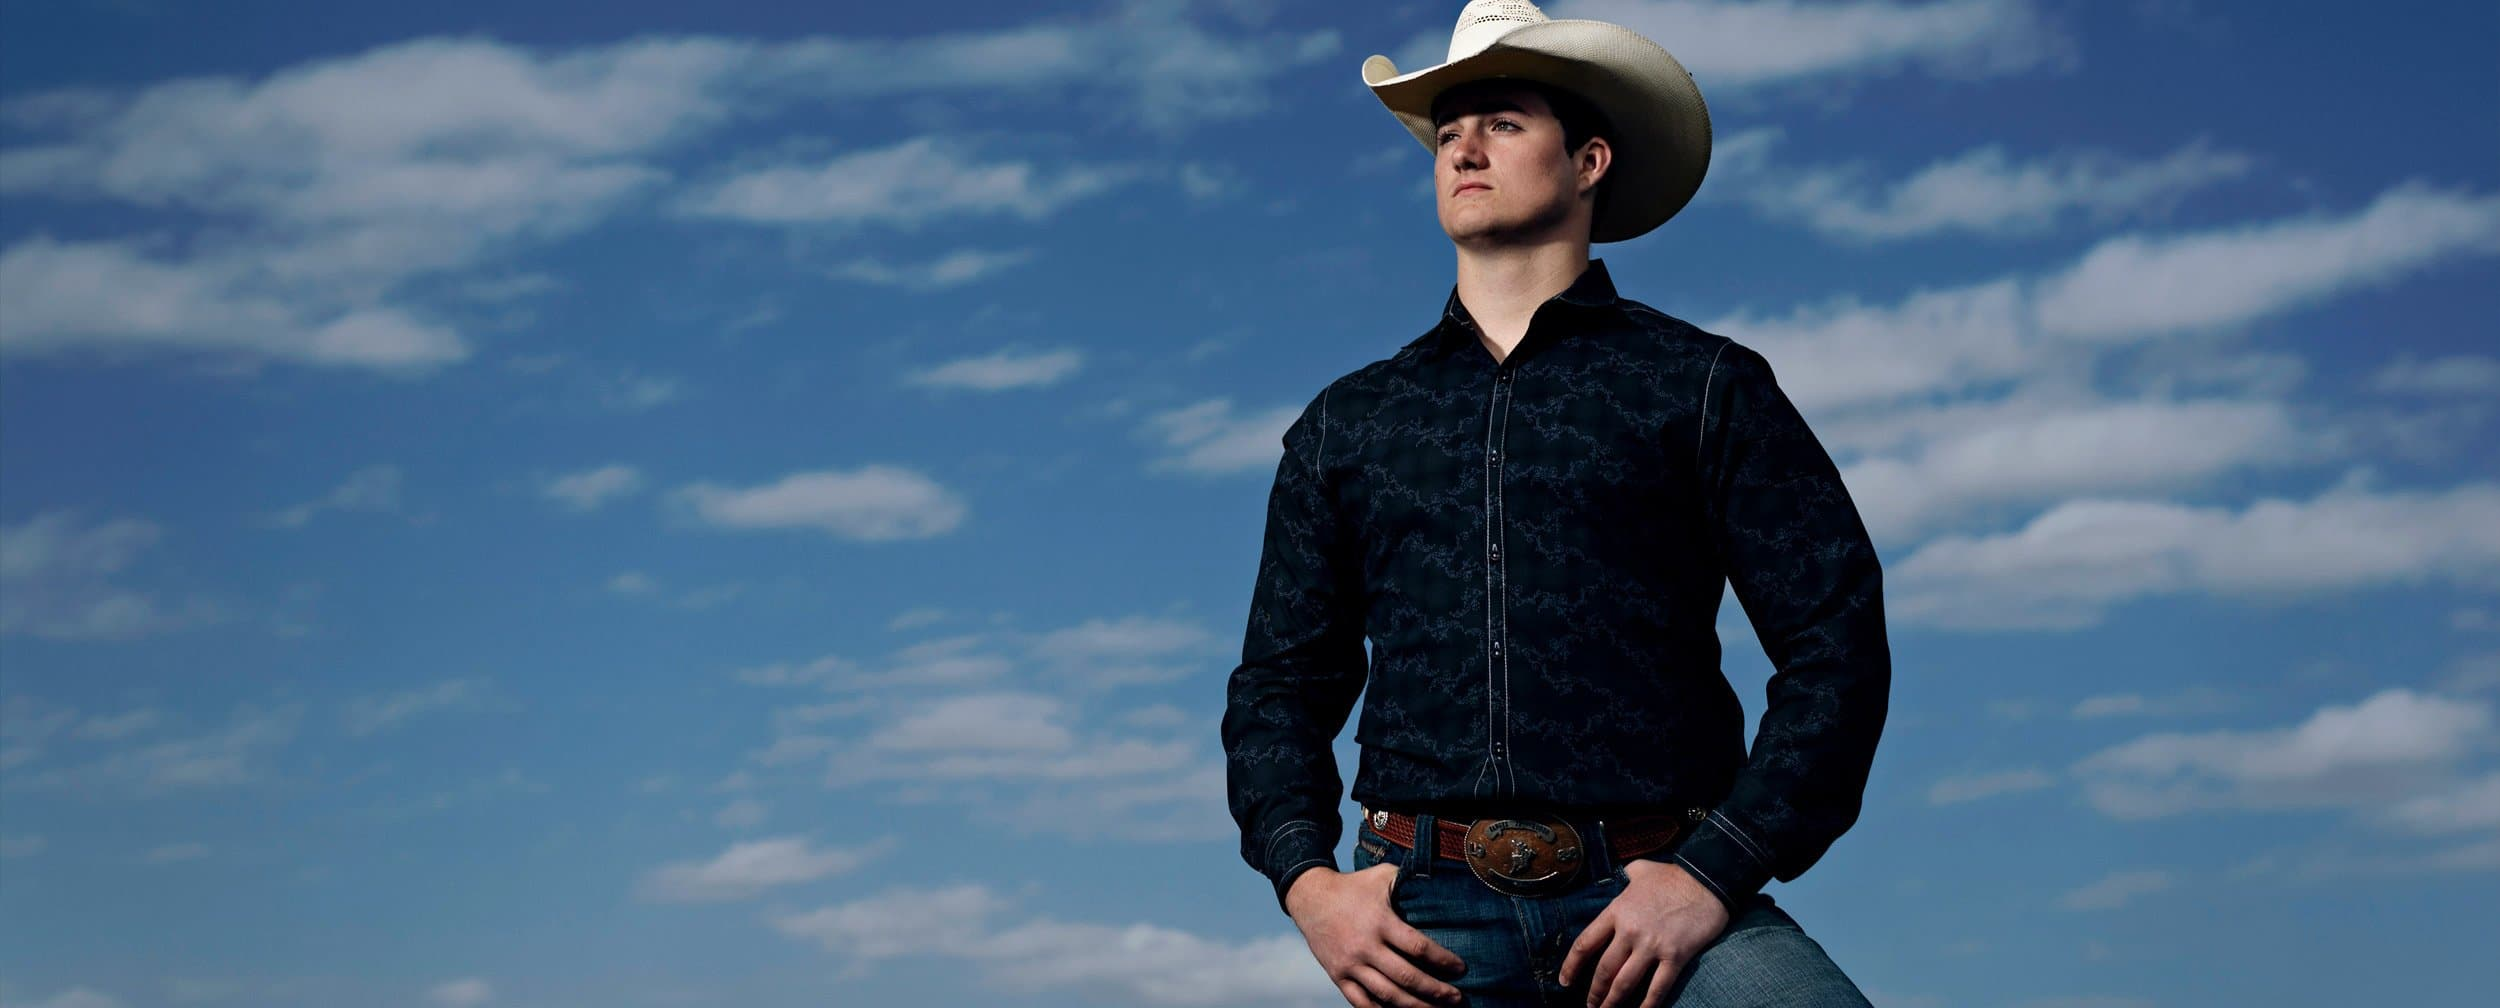 dallas boys senior pictures in cowboy hat with blue skies by mckinney photographer